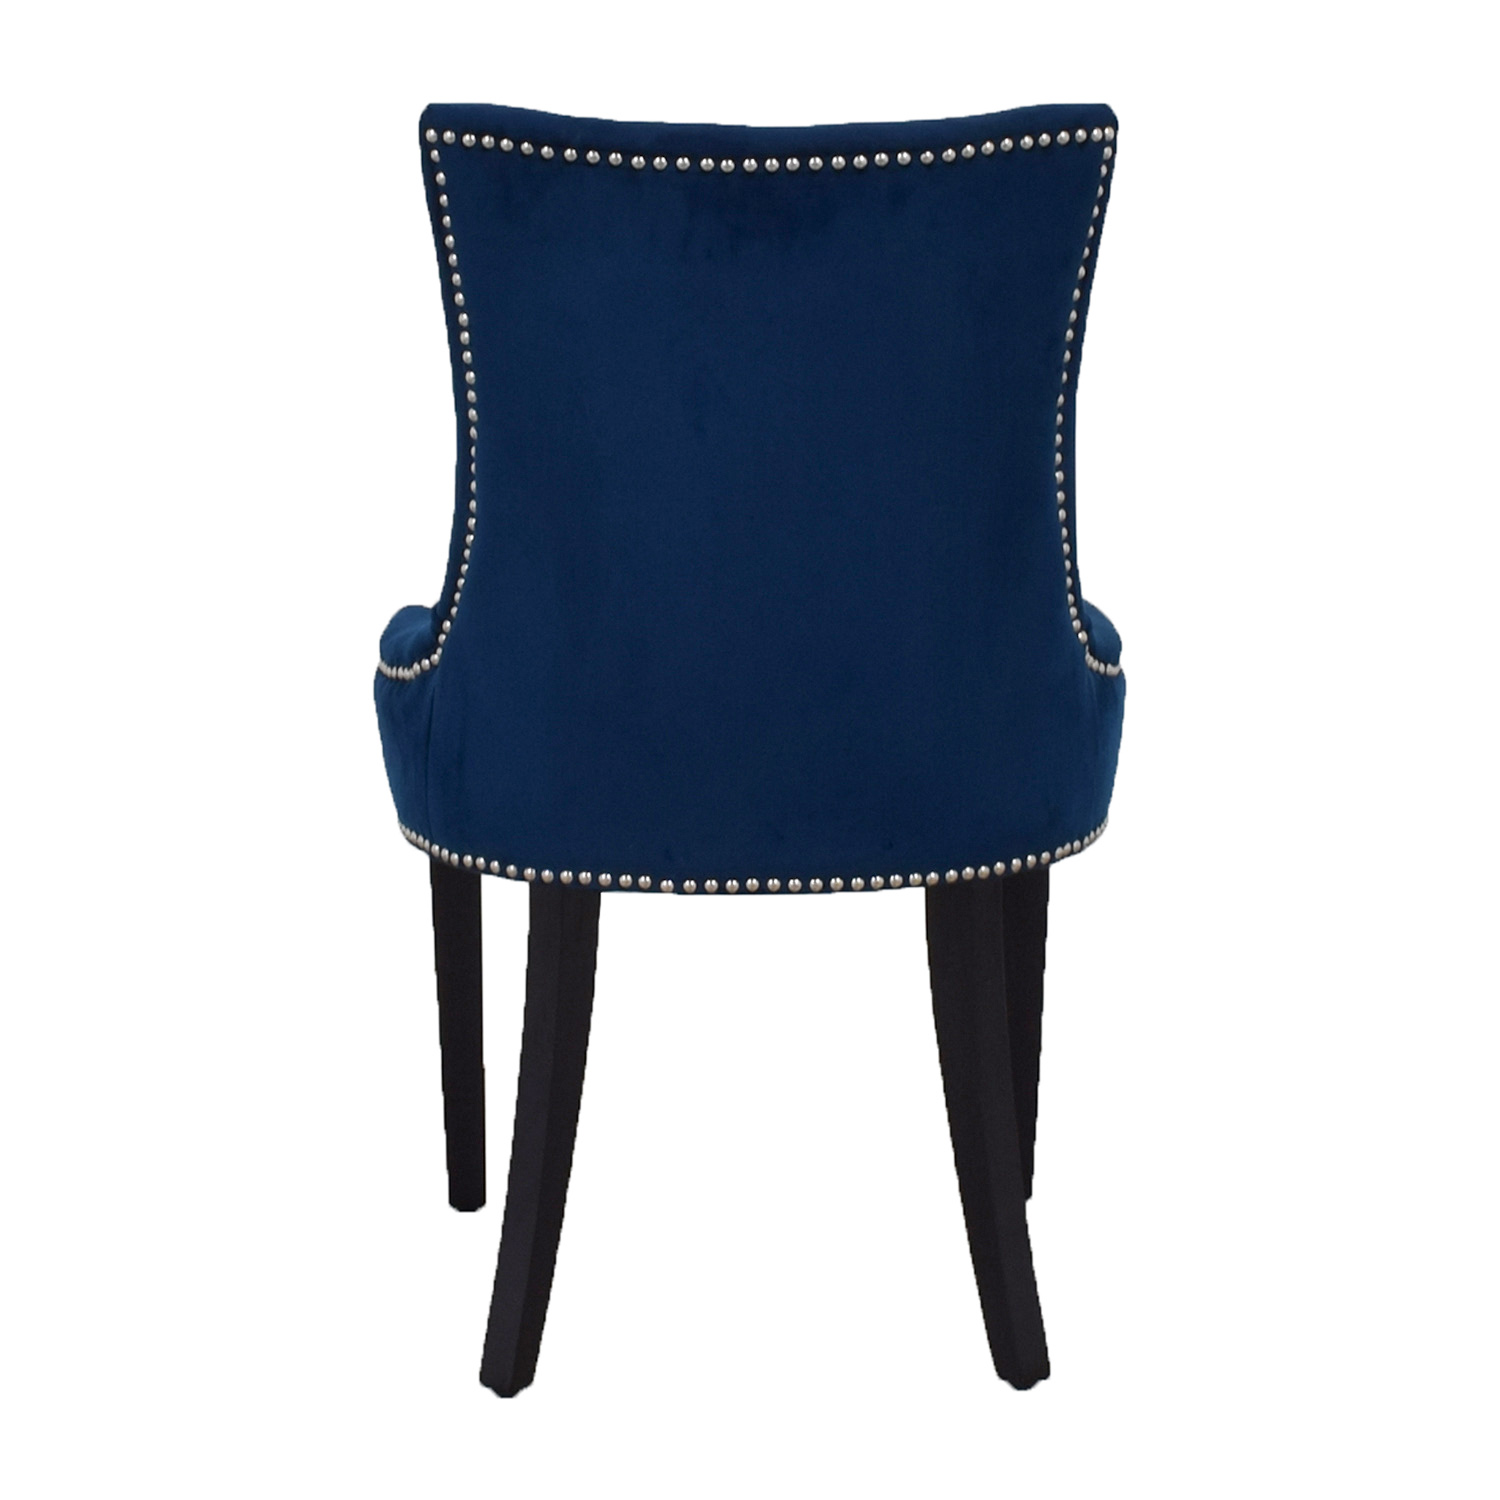 Safavieh Blue Nailhead Velvet Accent Chair / Accent Chairs